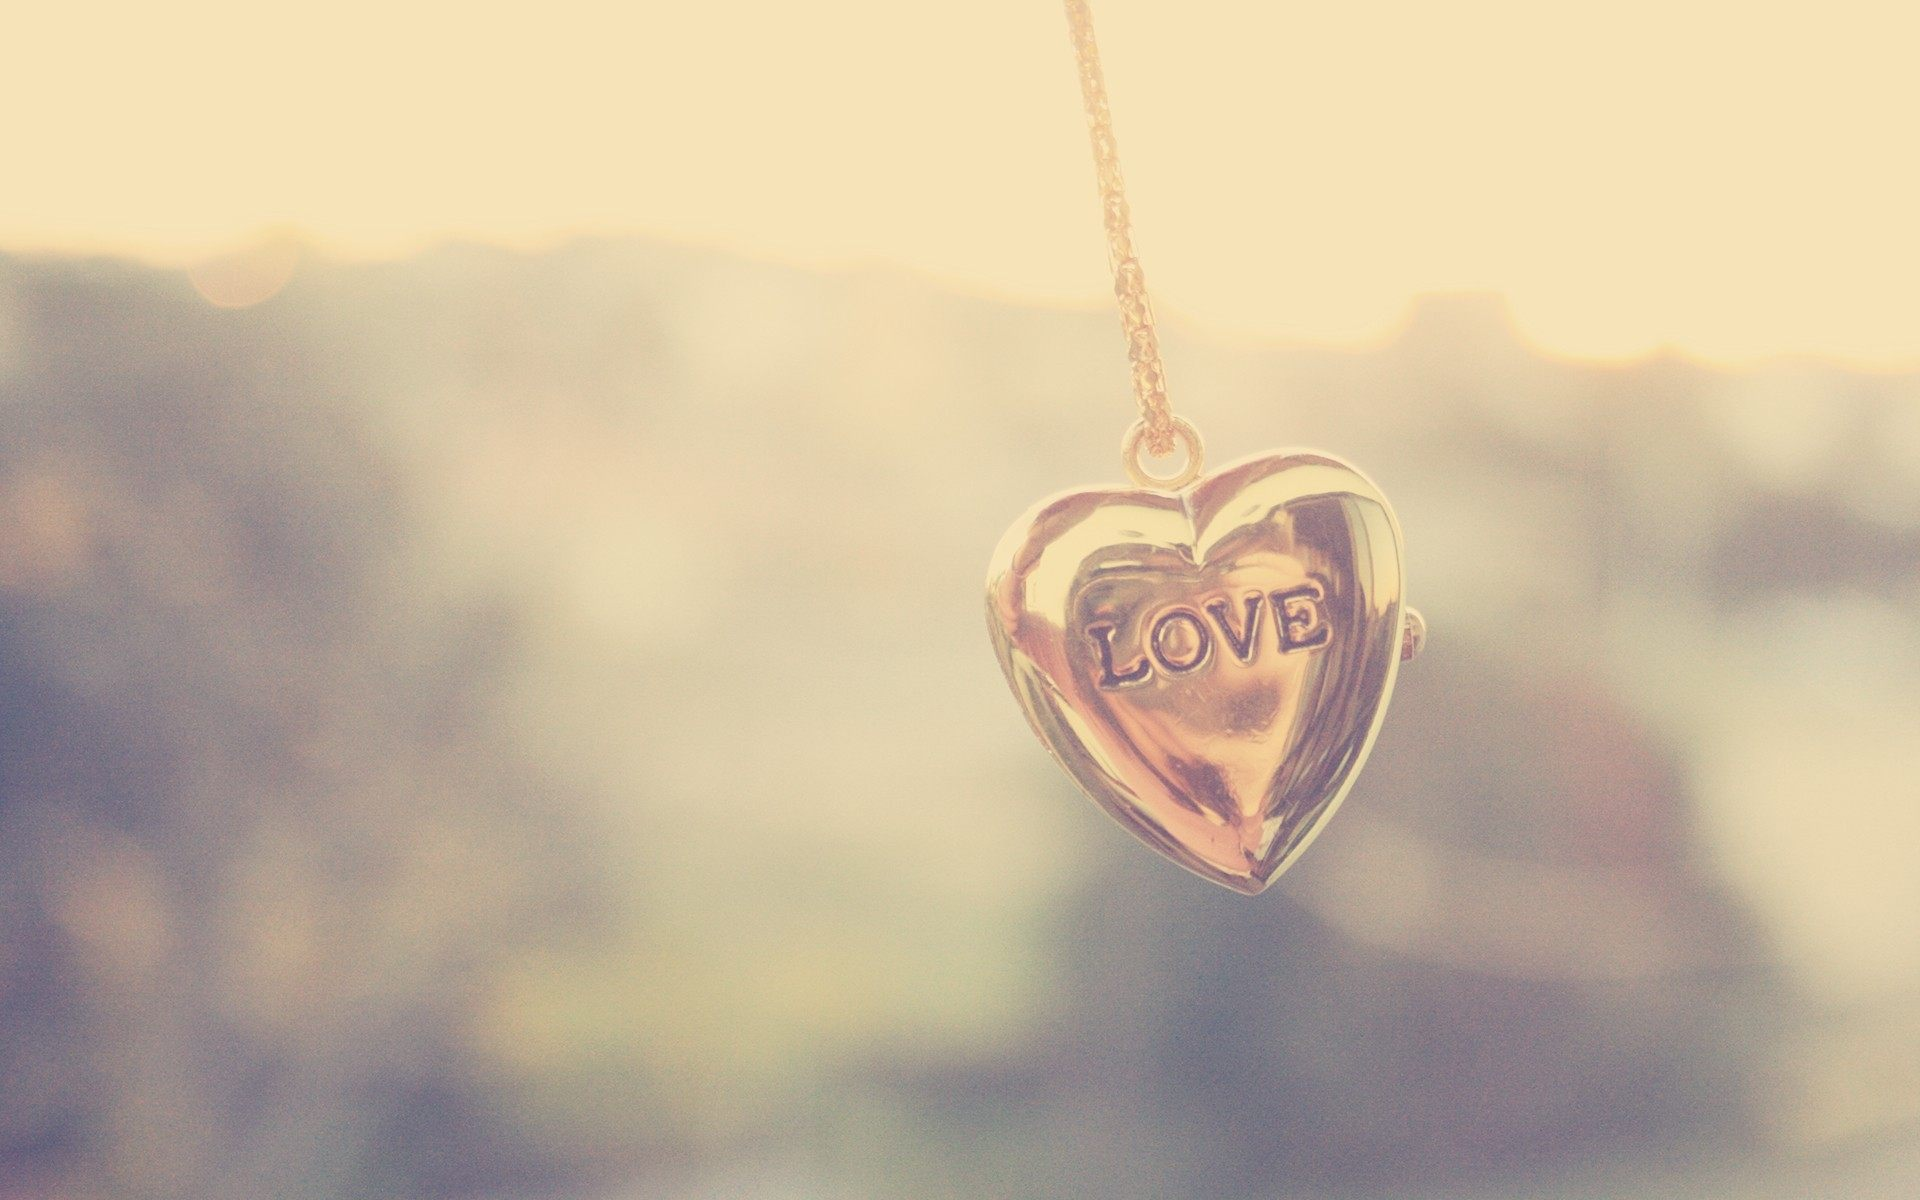 Necklace love heart wallpaper hd for desktop wallpaper download voltagebd Images